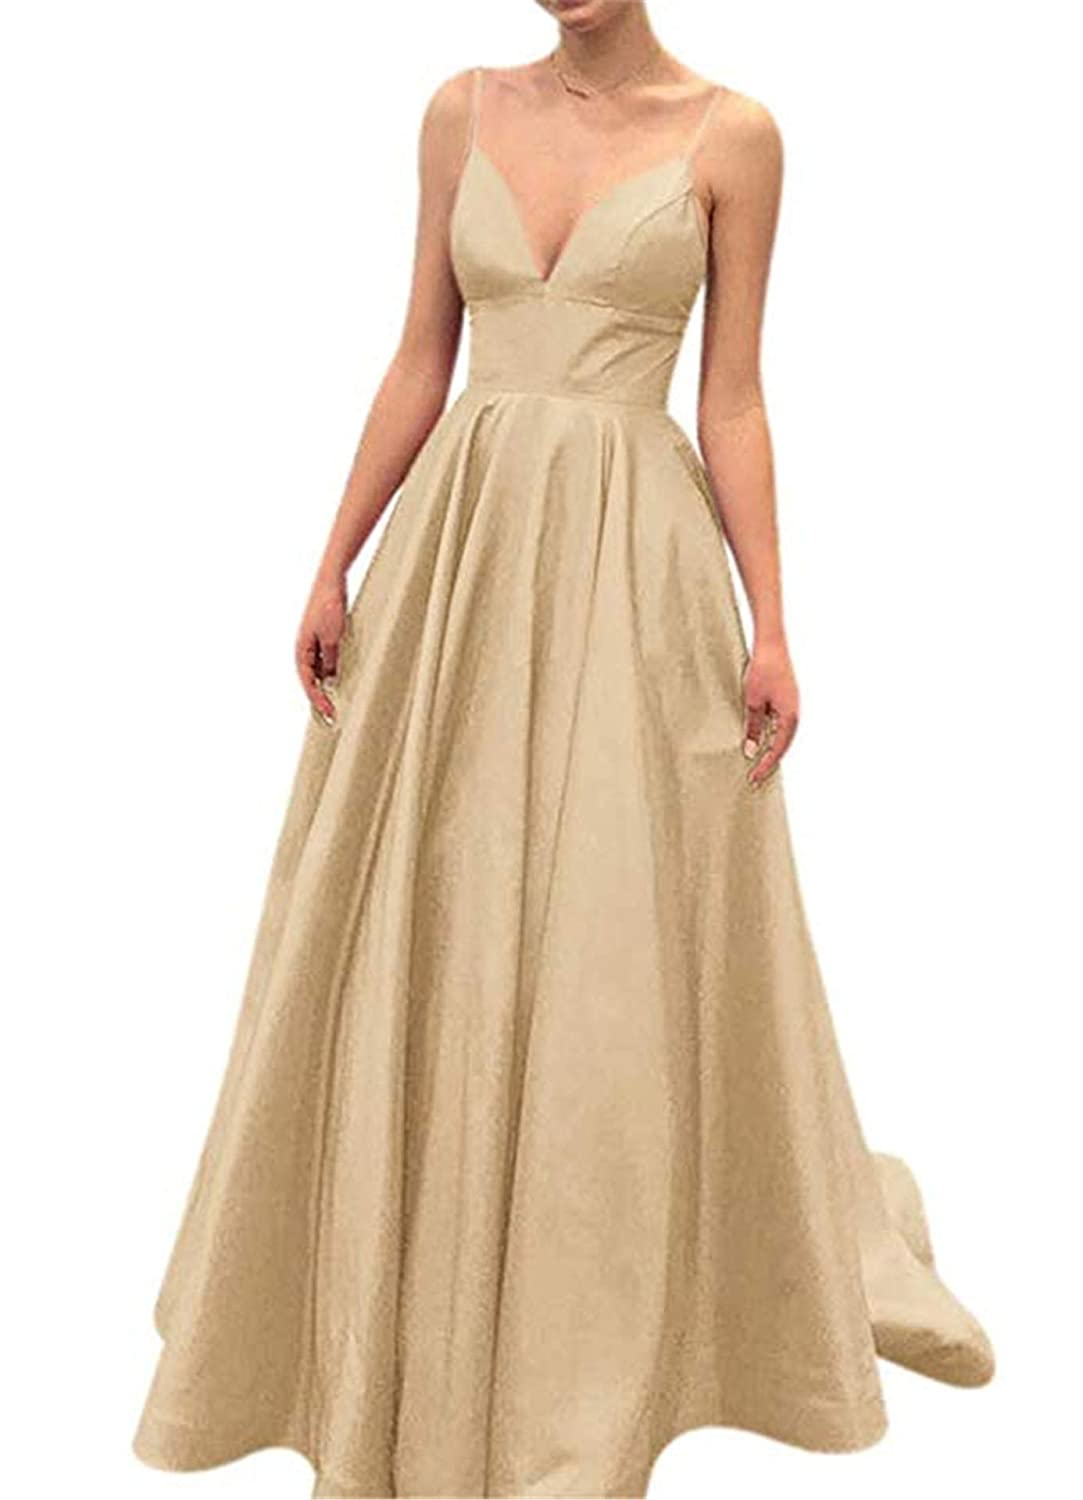 Champagne QiJunGe V Neck Evening Party Gown A Line Spaghetti Strap Prom Dress with Pocket